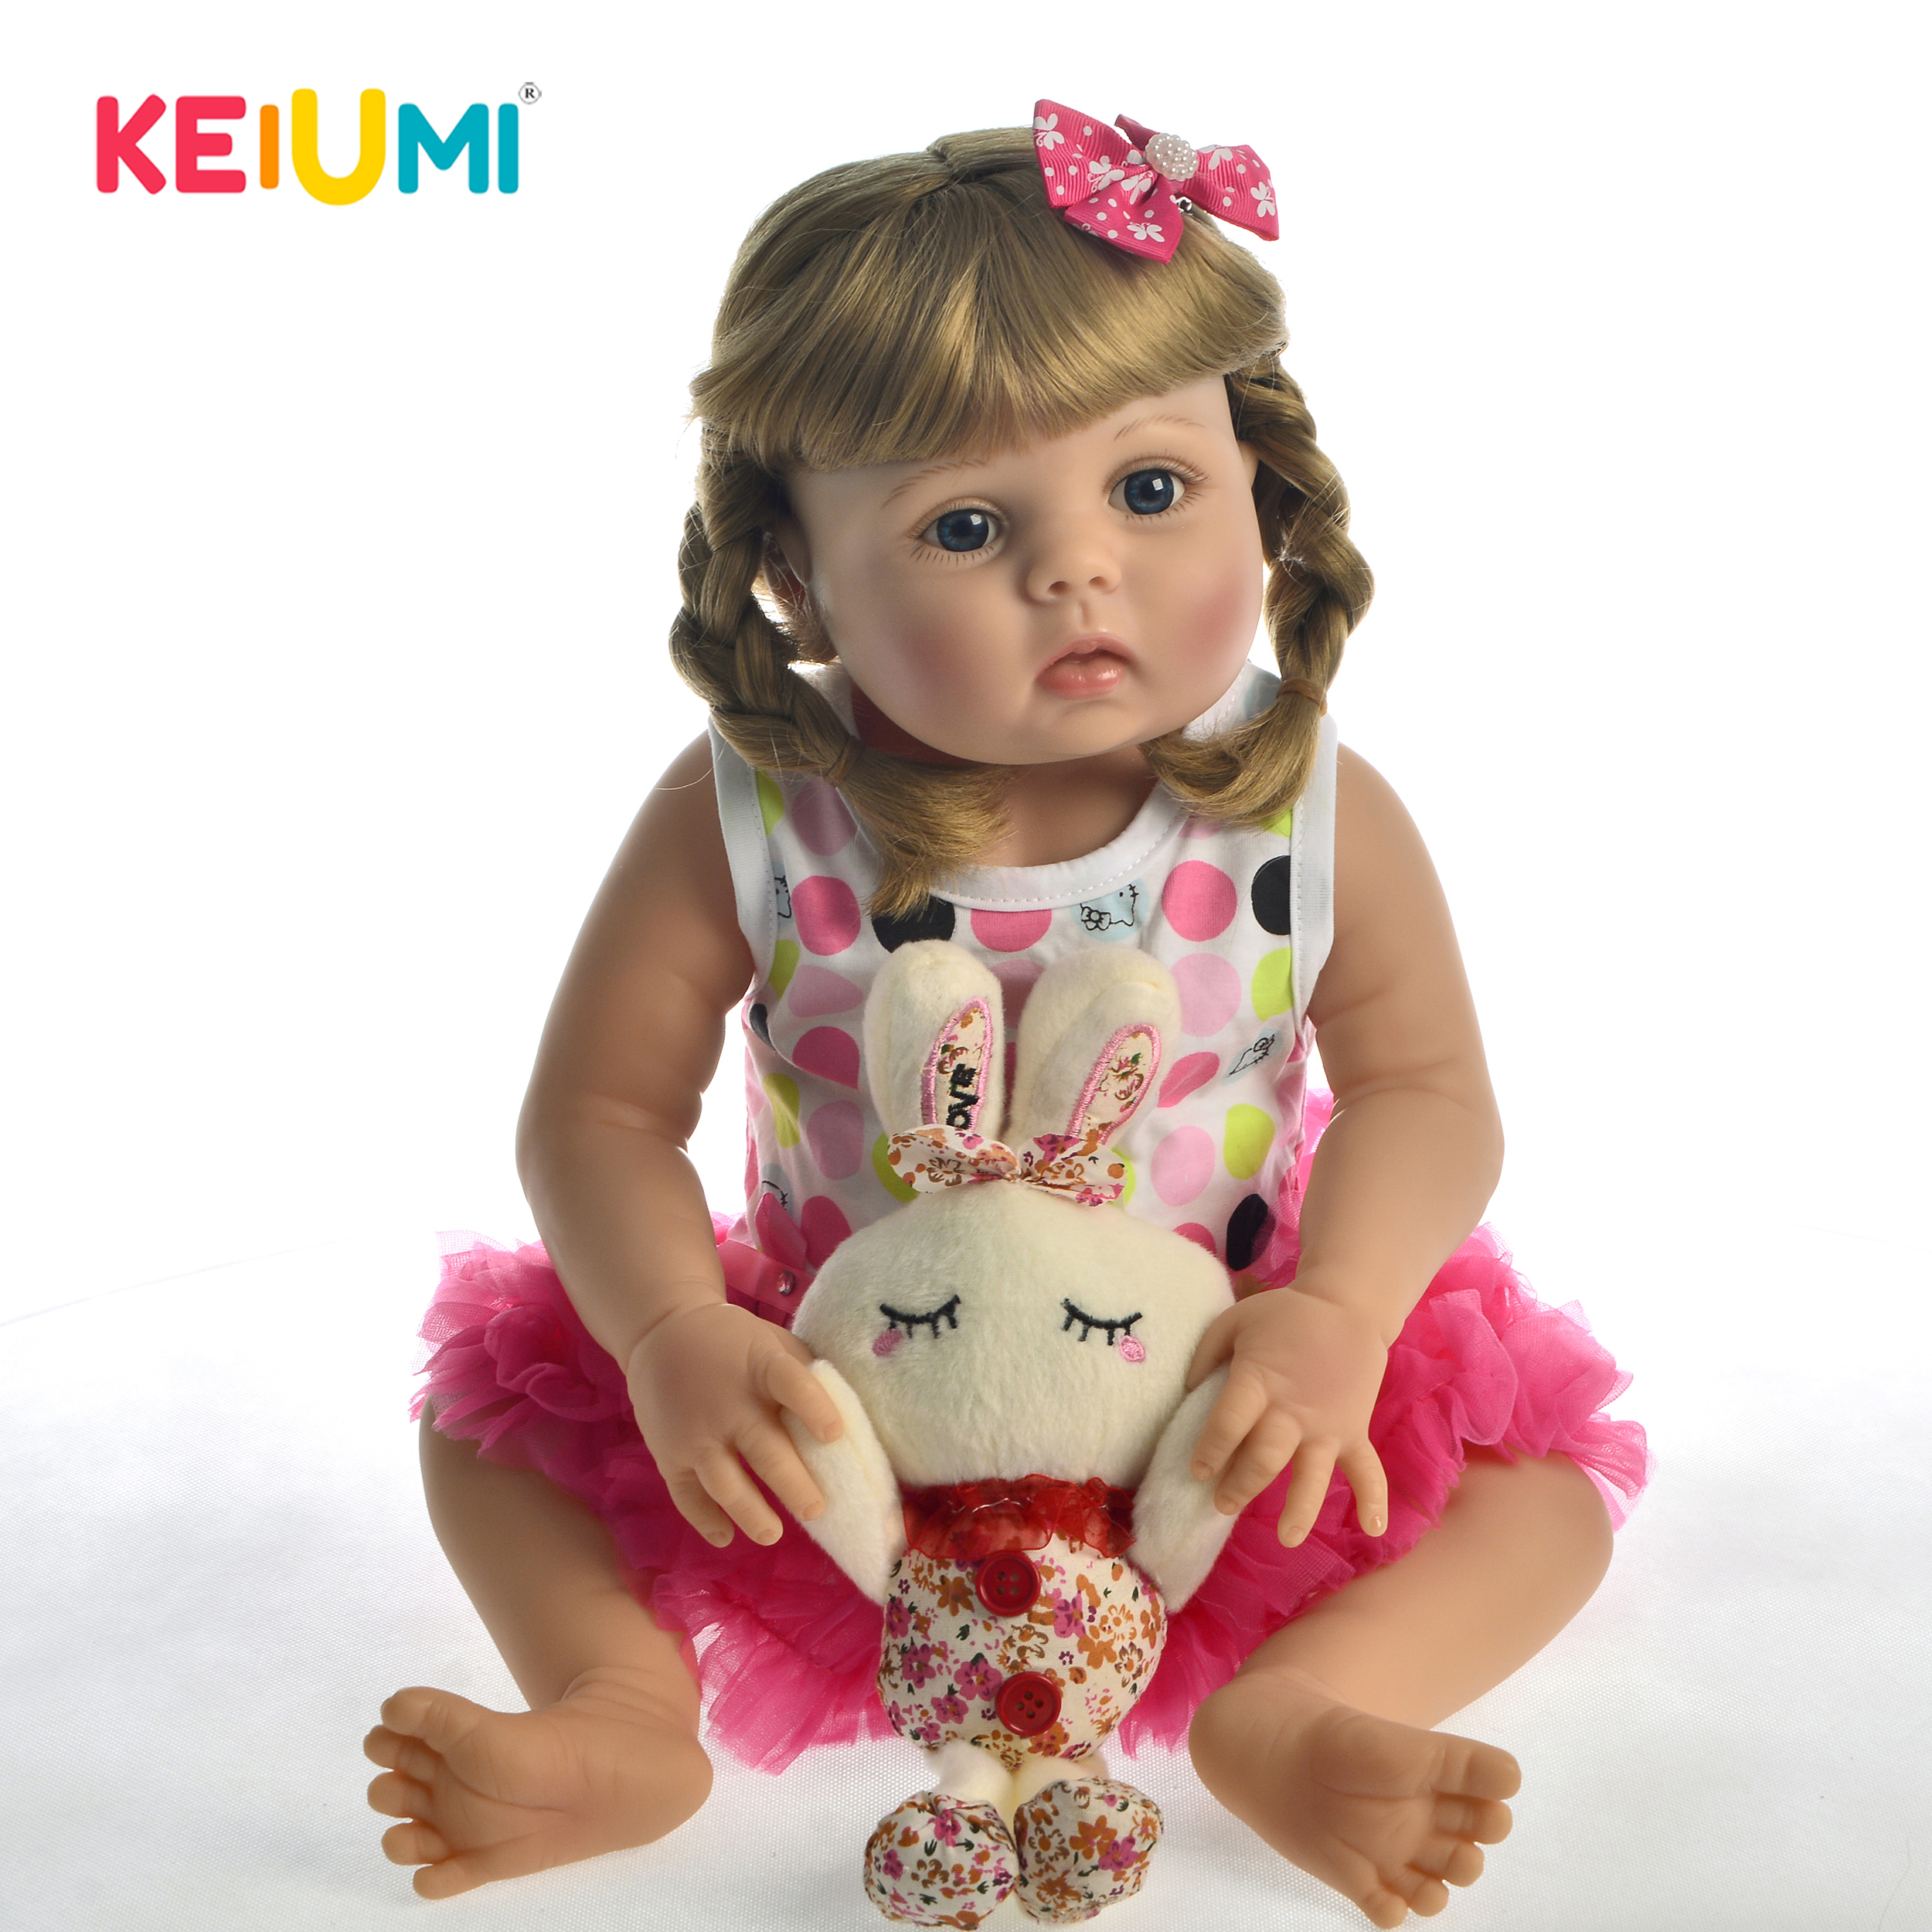 New Arrival 23 57 cm Silicone Full Body Alive Baby Doll Vinyl Customize DIY Hair Adorable